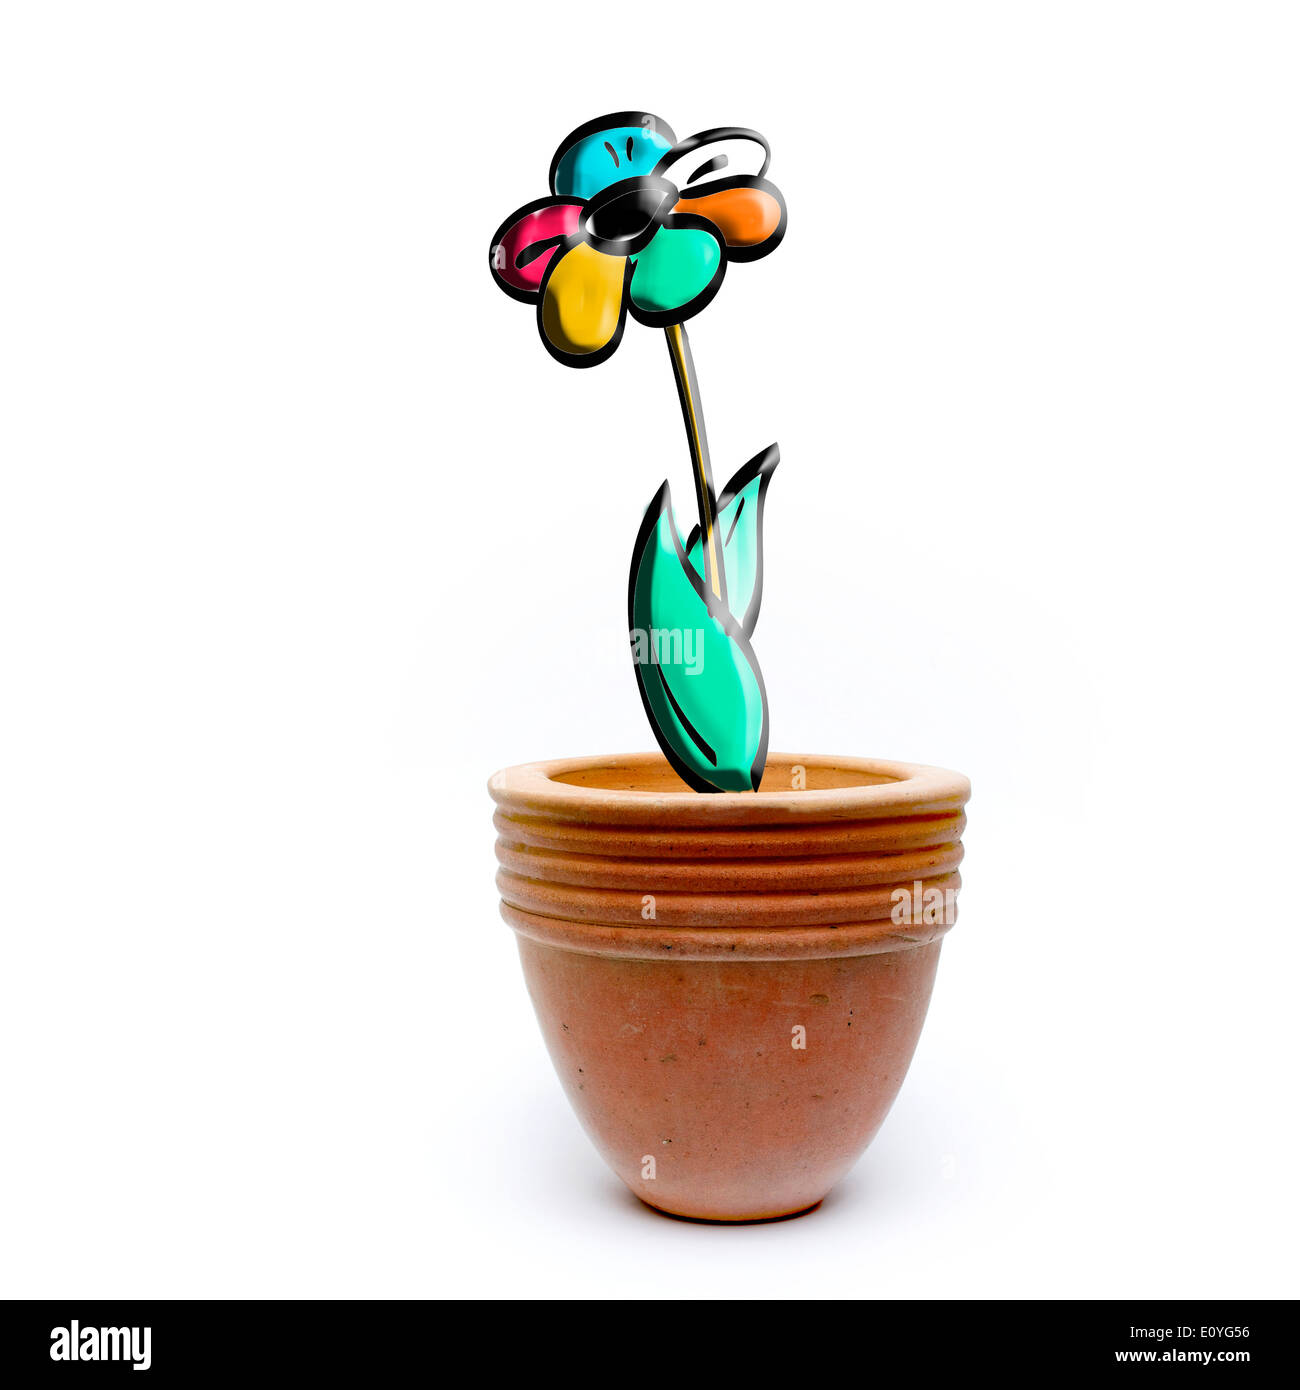 Flower in a pot, concept - Stock Image